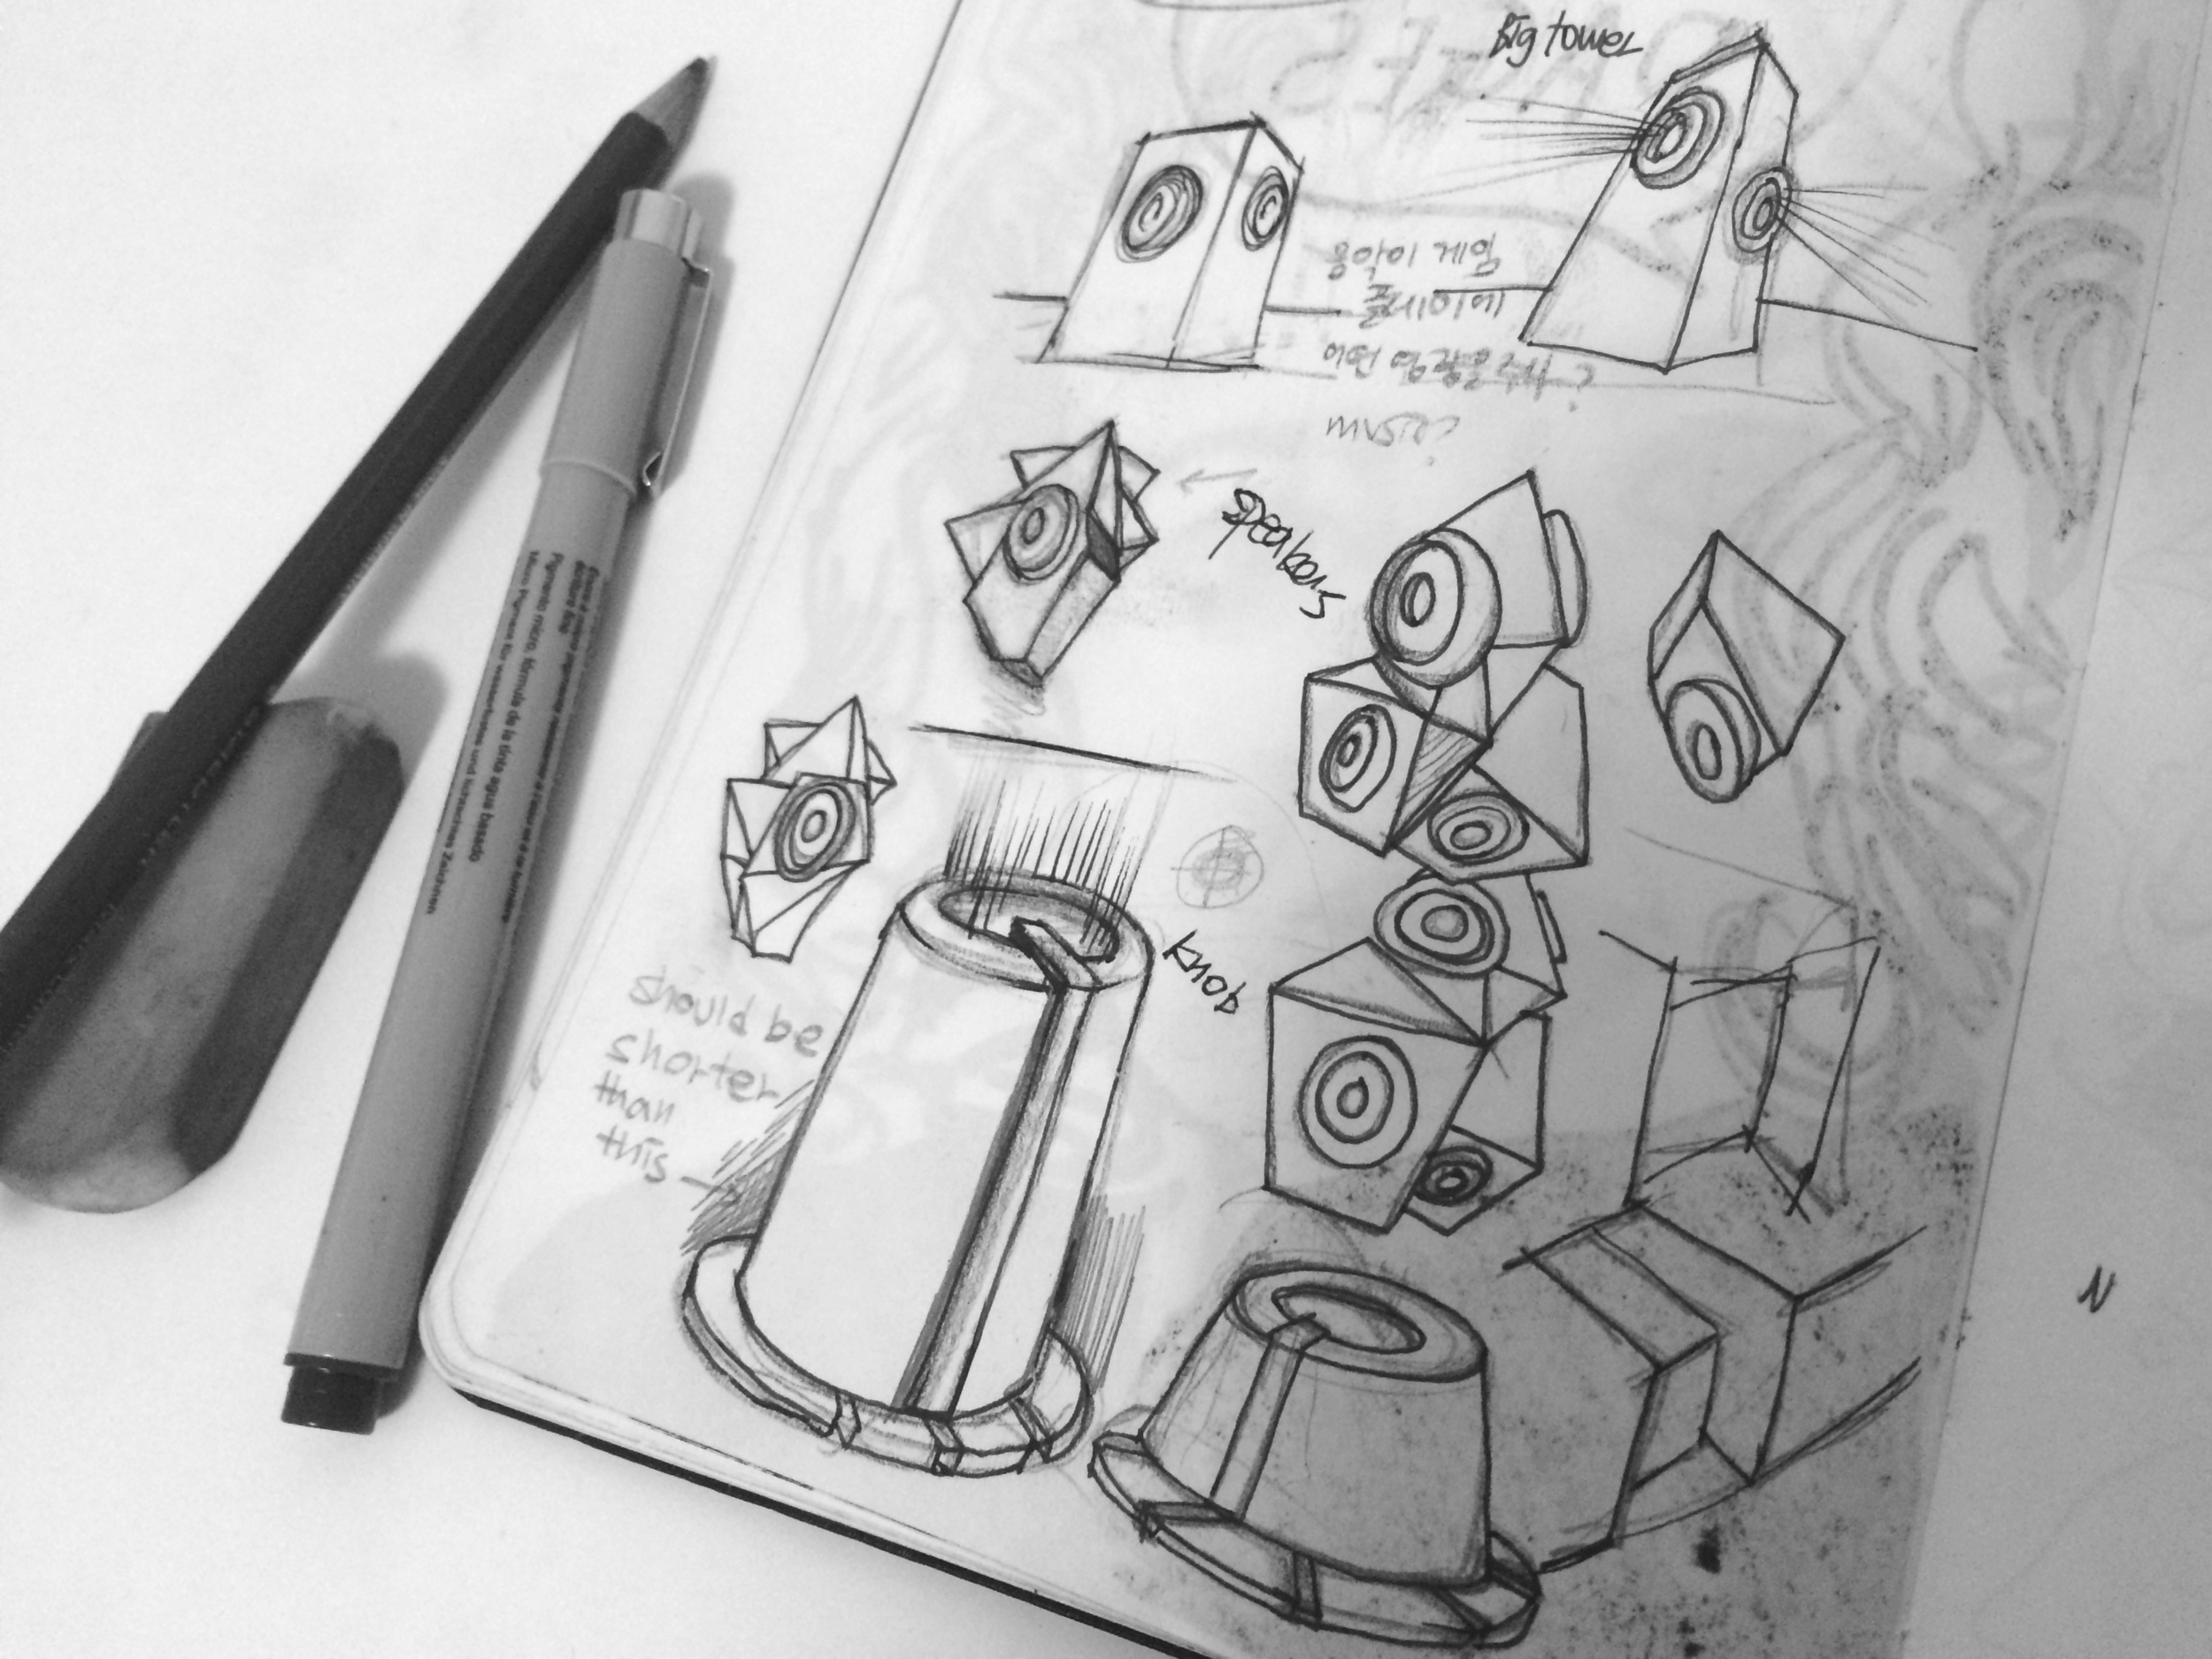 Sketch for knobs and speaker